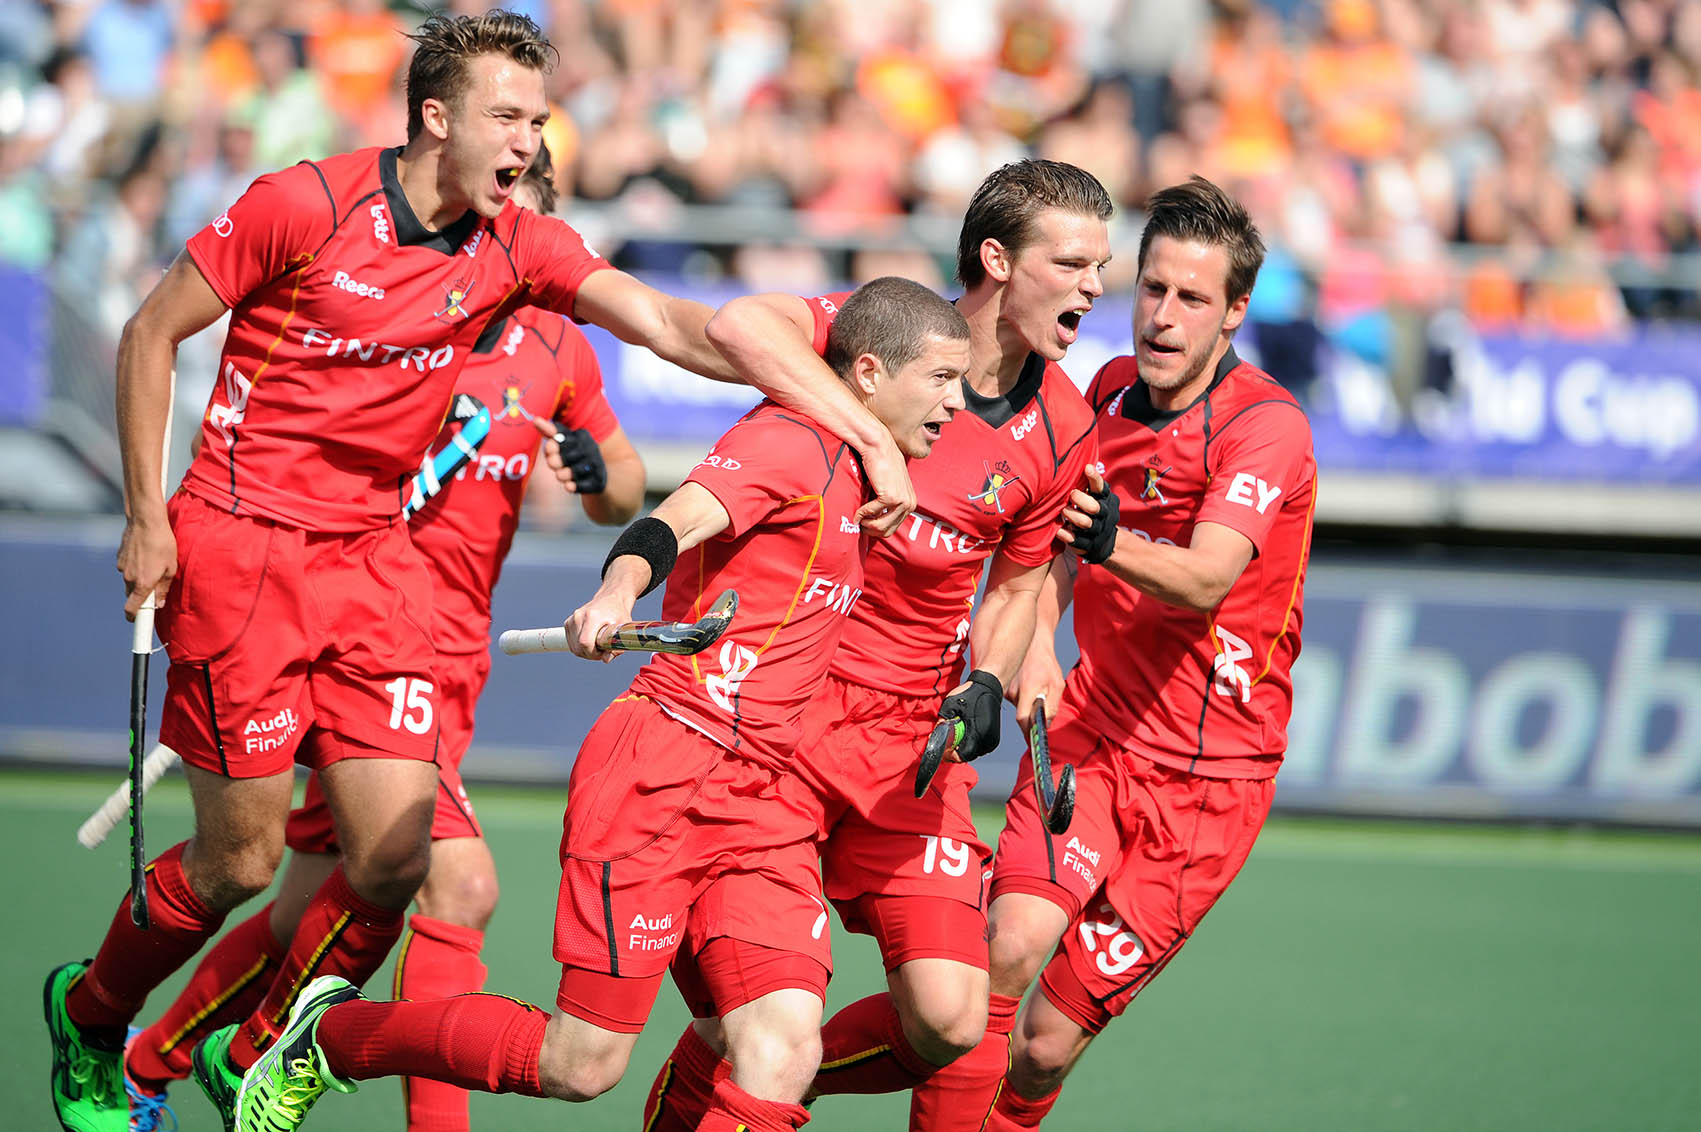 The Royal BelgianHockey Association's men's team celebrateJohn John Dohmen winning goal against Indiain the 2014 FIH World Cup. Team unity is vital for success and Belgium's rise up the rankings is indicative of a successful programme. Image supplied by the Royal Belgium Hockey Association.